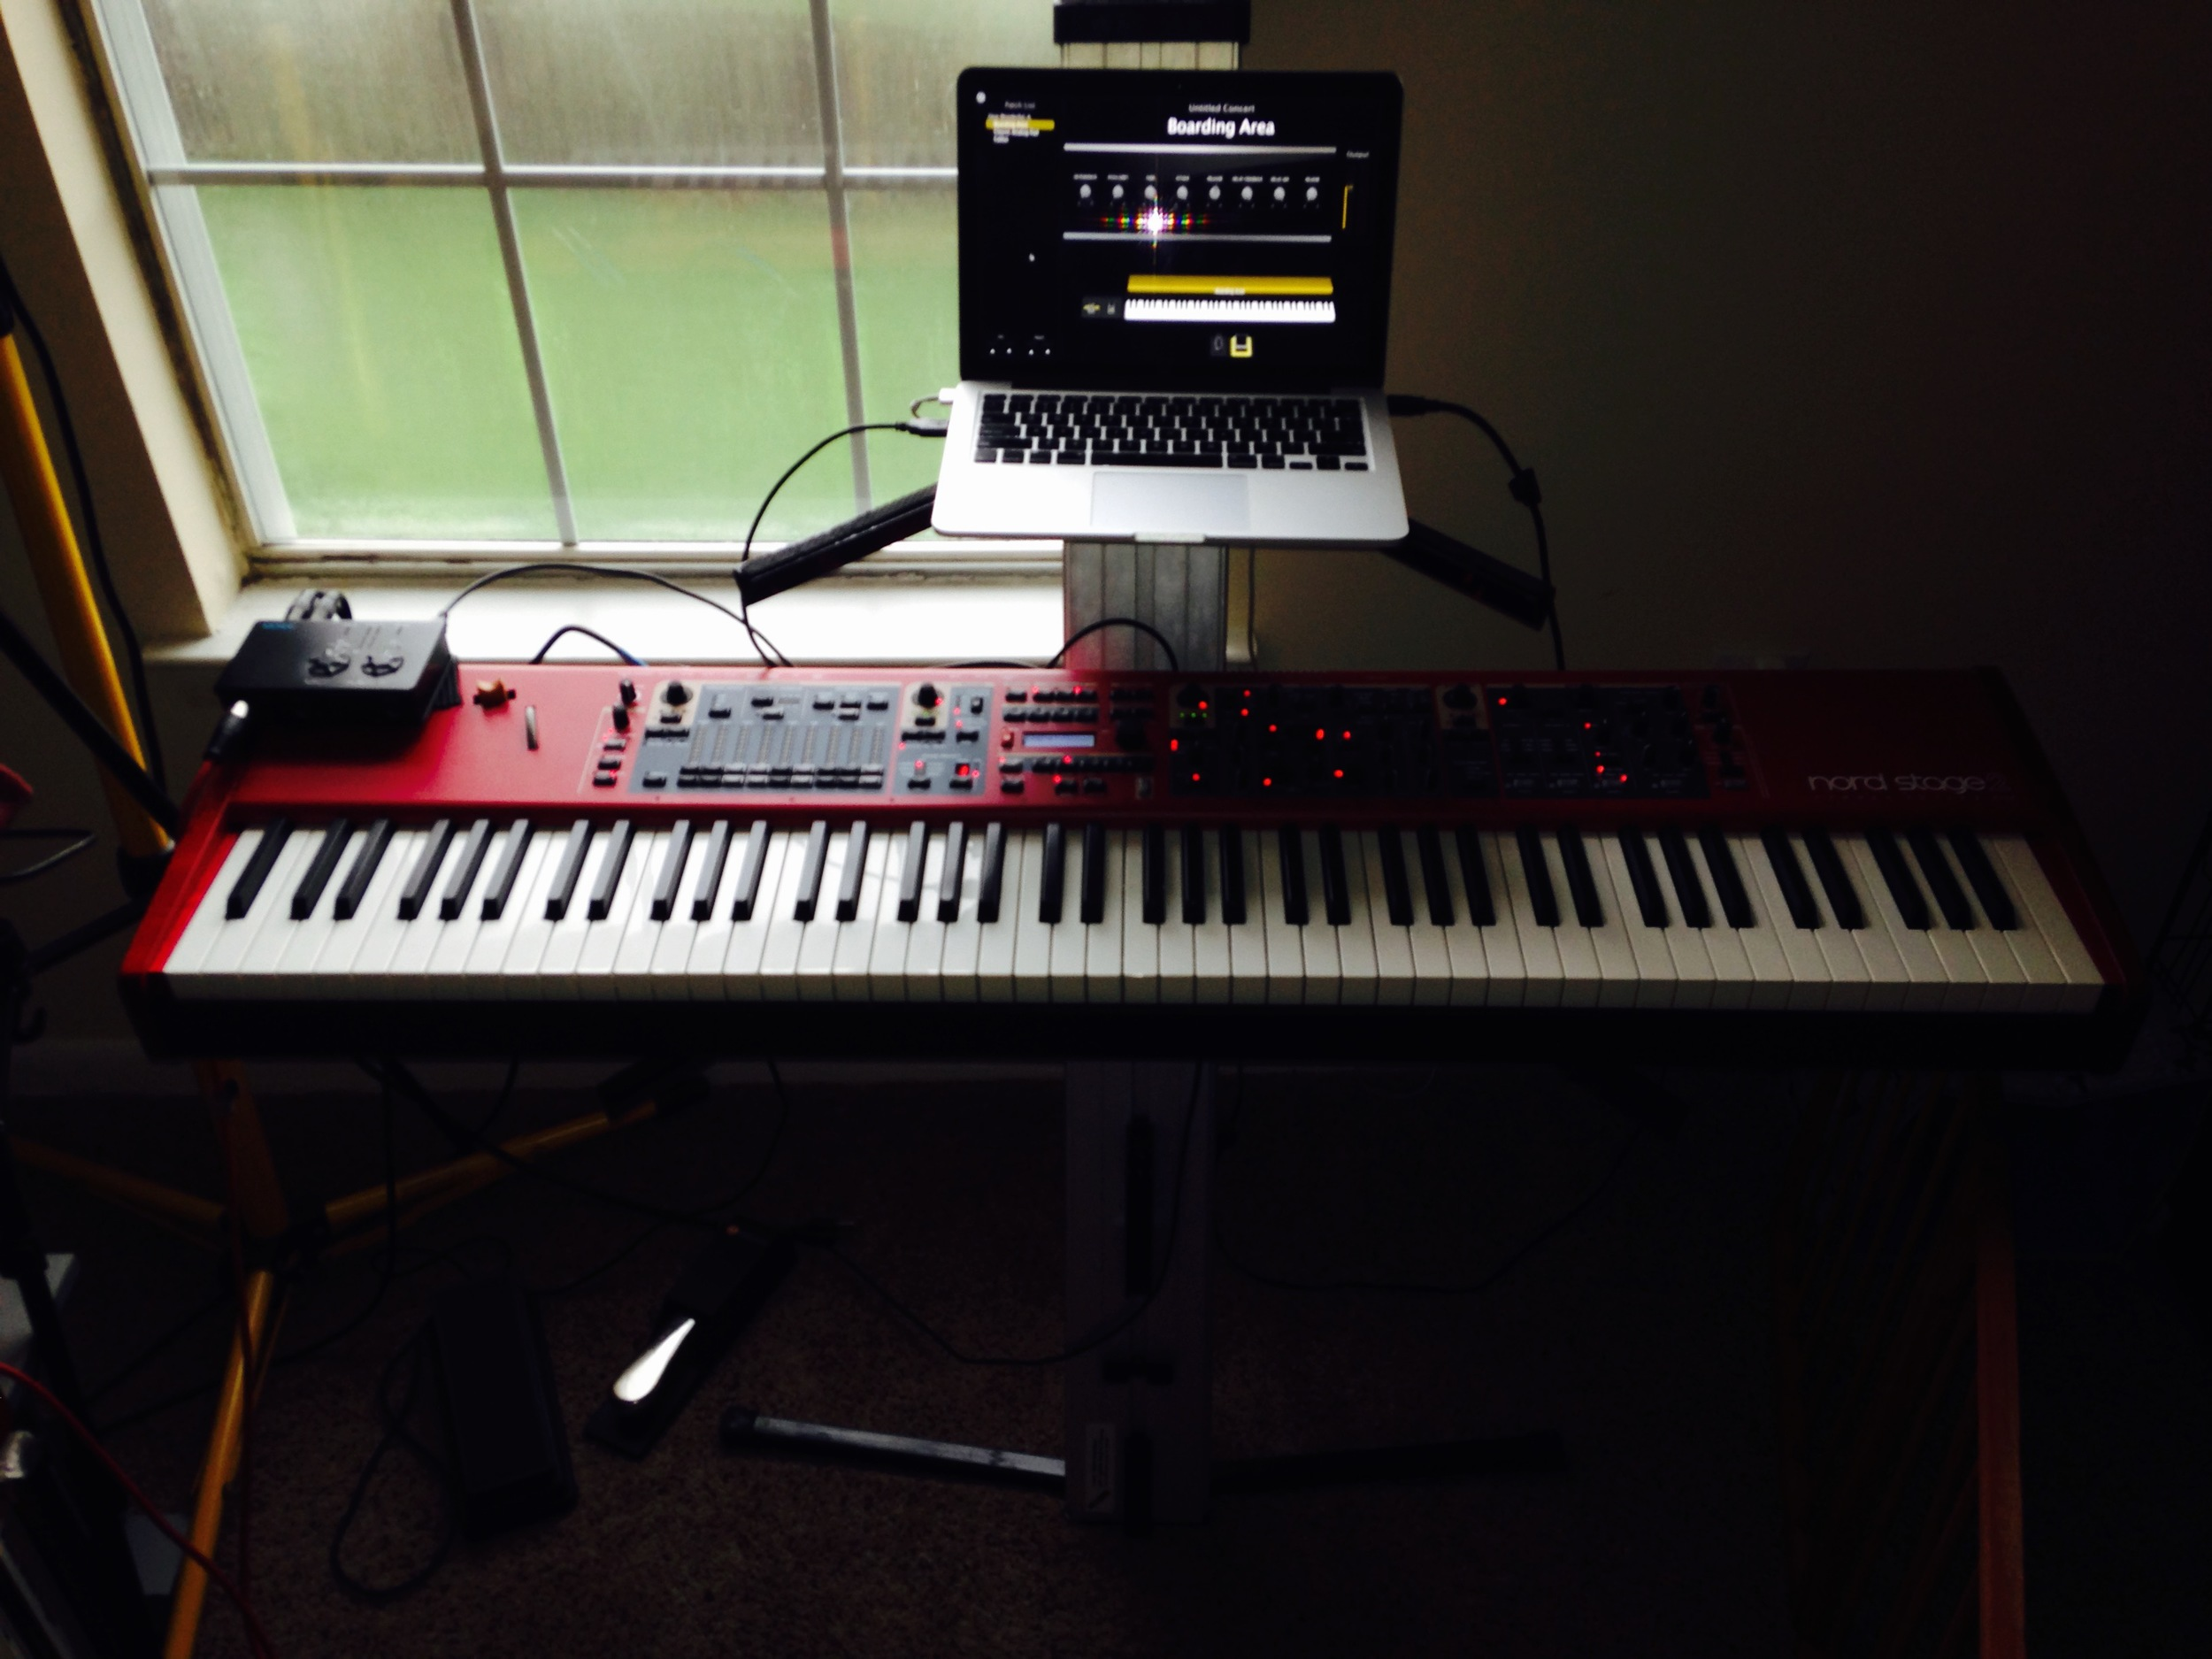 "My setup: I use a 13"" MacBook Pro 2014 running Mainstage 3.1. The keyboard is a Nord Stage 2, and everything runs into a MOTU MicroBook II. I use an Ultimate Support single column keyboard stand, M-Audio sustain pedal, and Studiologic volume pedal."